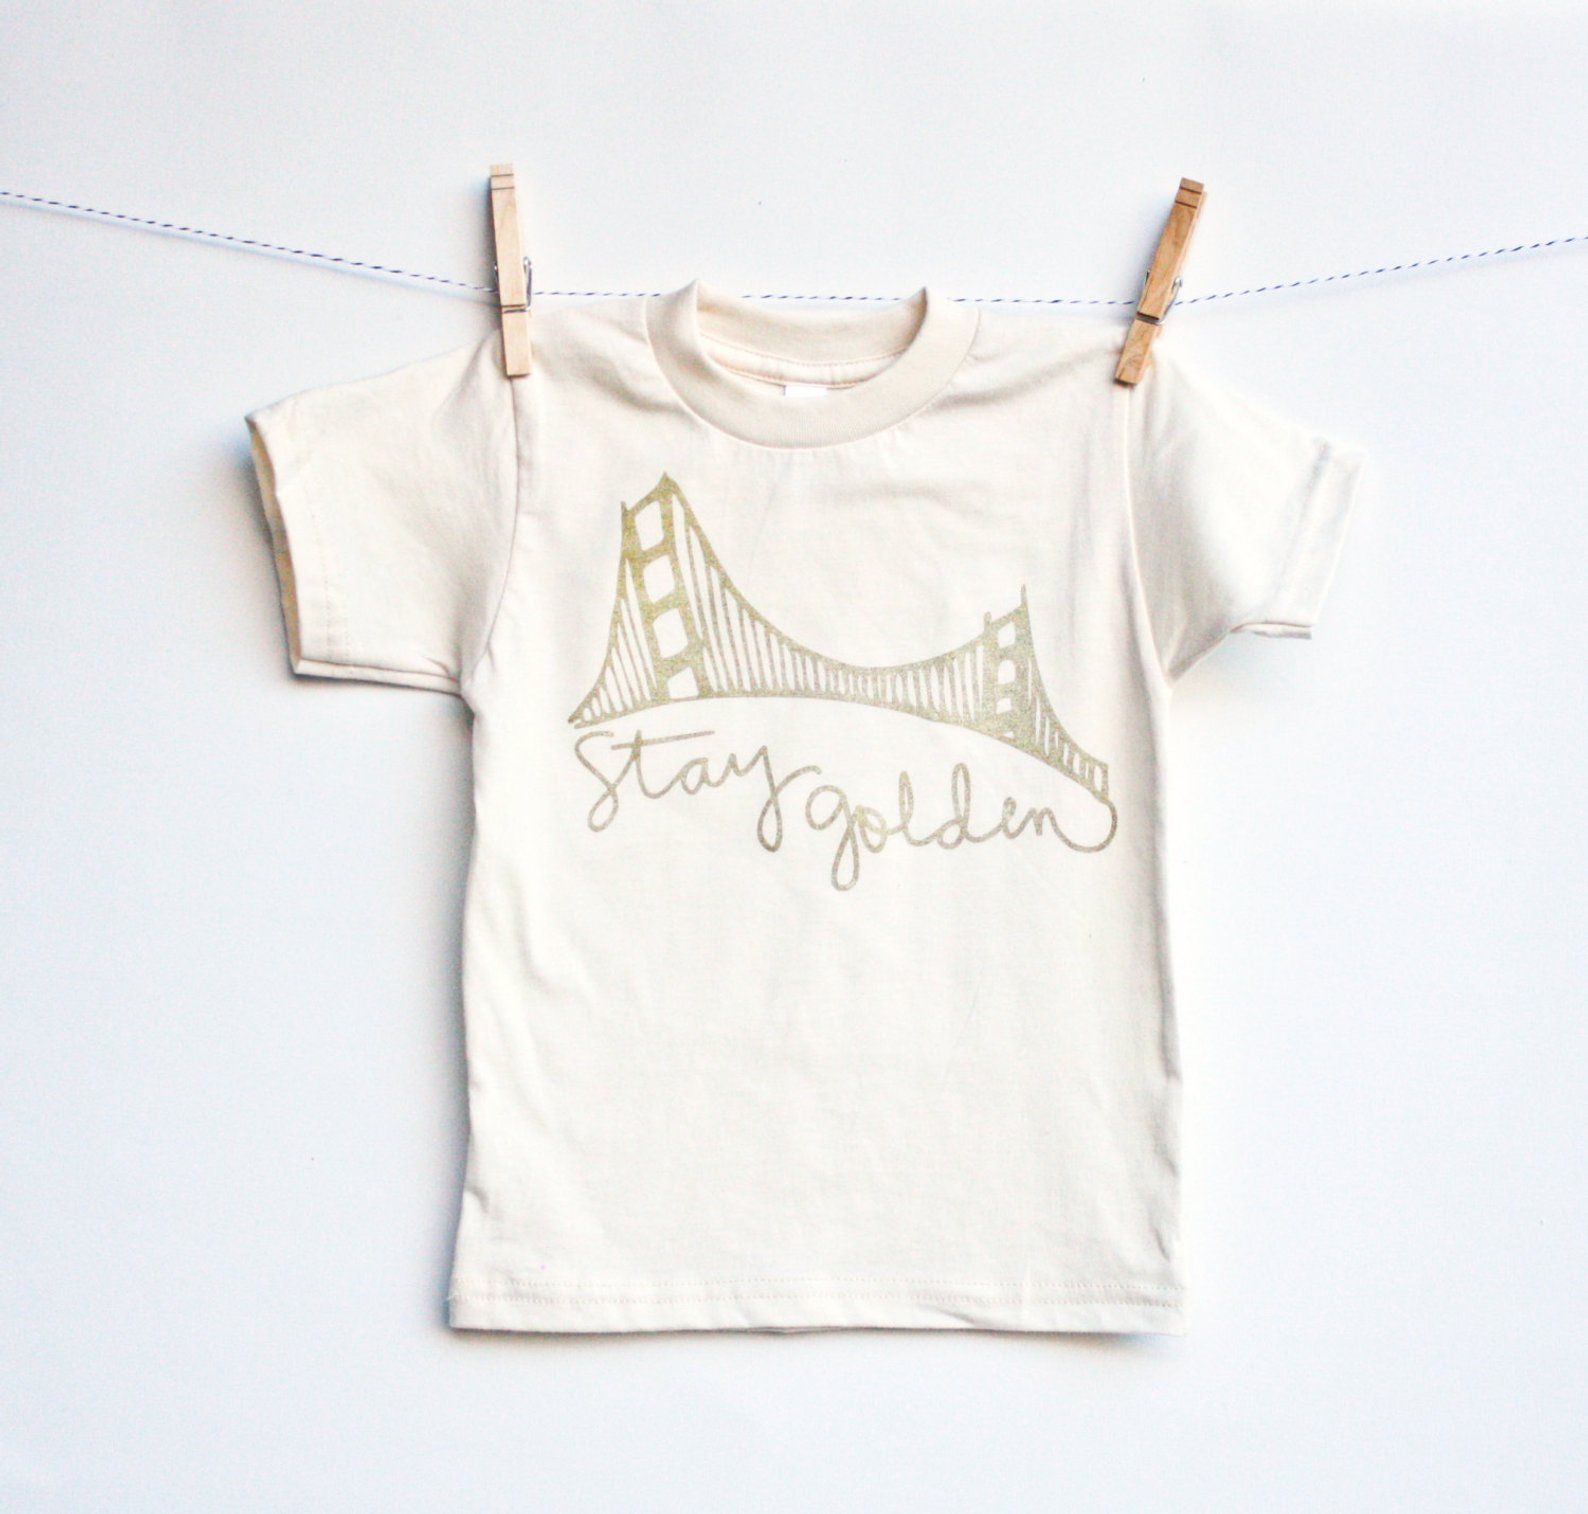 Stay Golden Organic San Francisco Golden Gate Bridge Shirt for Kids By Earth Cadets